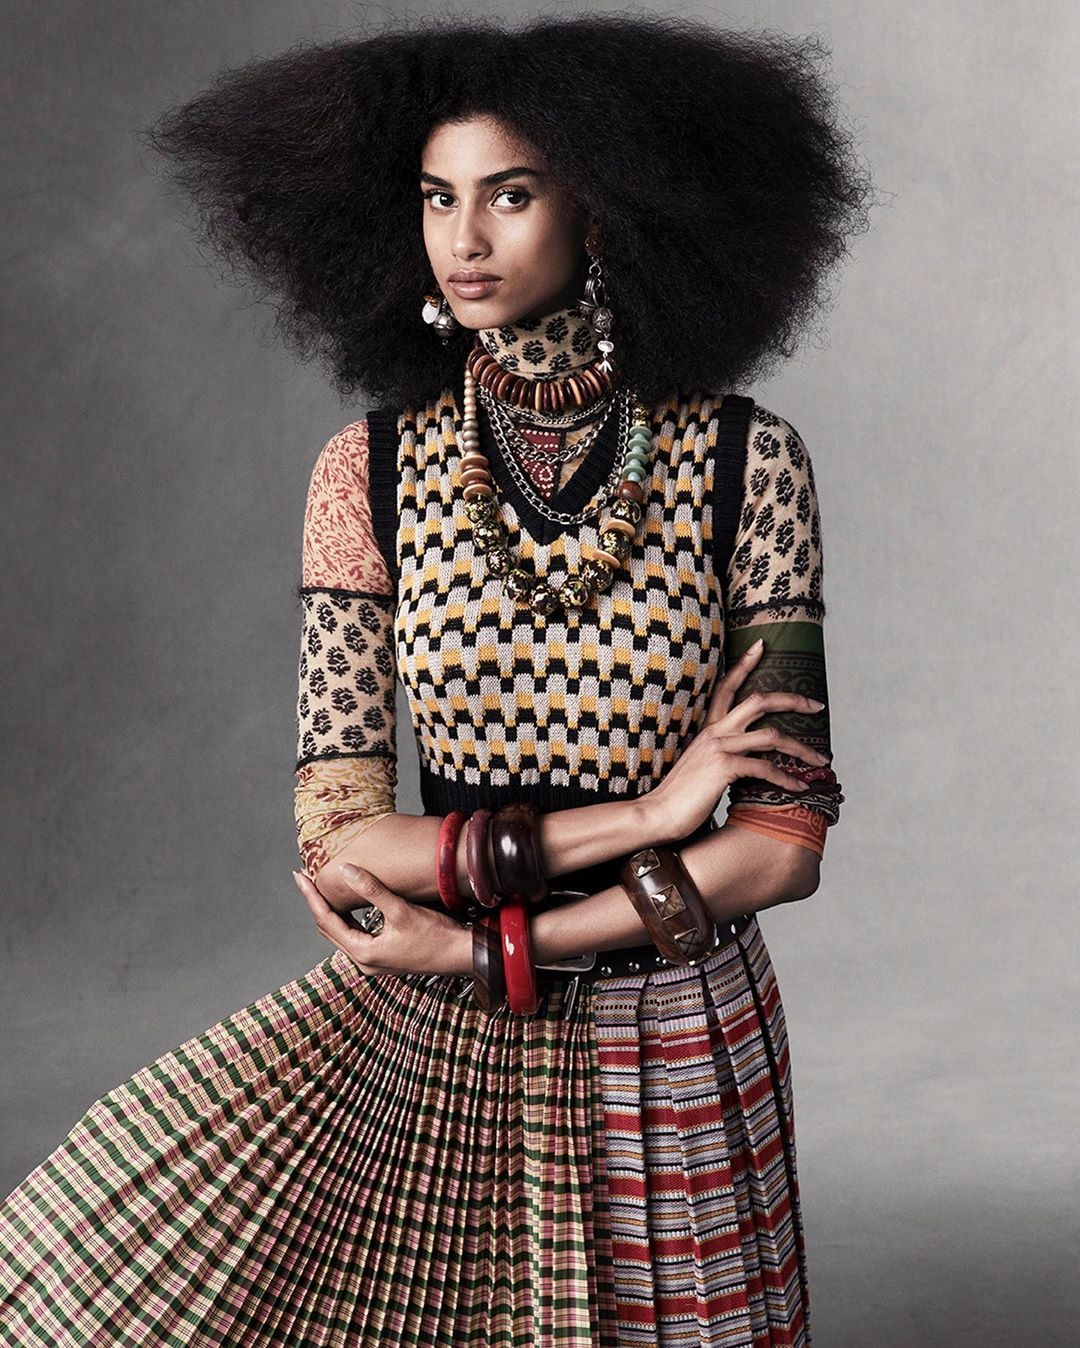 Vogue editor up close and personal Ethan James Imaan Hammam